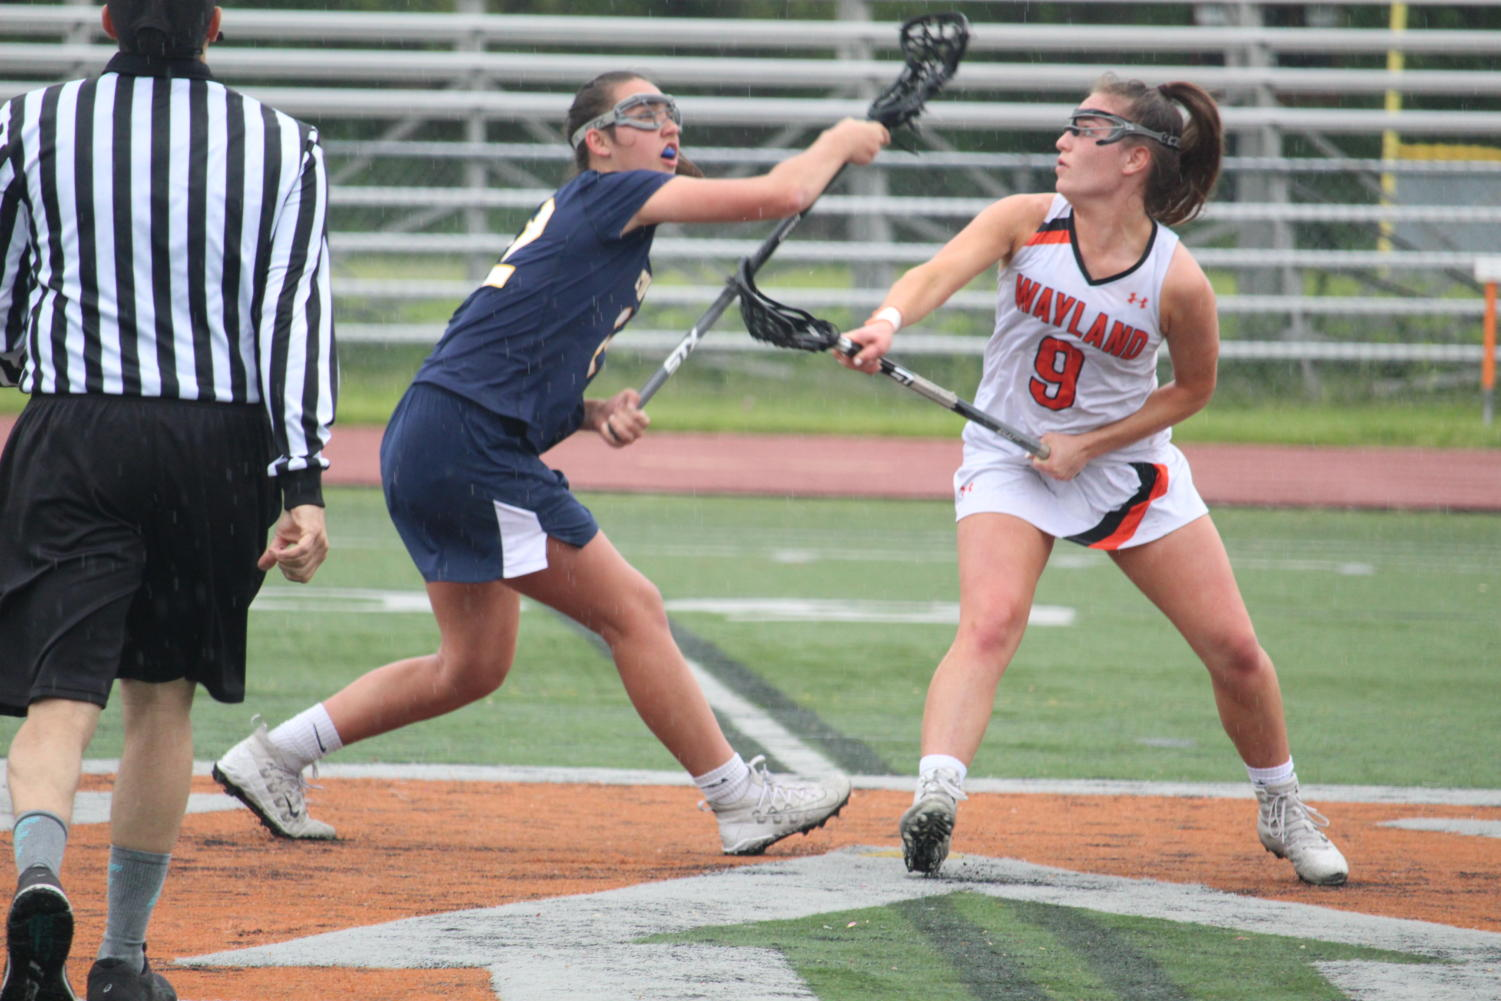 Senior+Kate+Balicki+squats+as+she+and+an+Acton-Boxborough+player+fight+for+the+ball+following+the+game+reset+after+Wayland%27s+goal.+